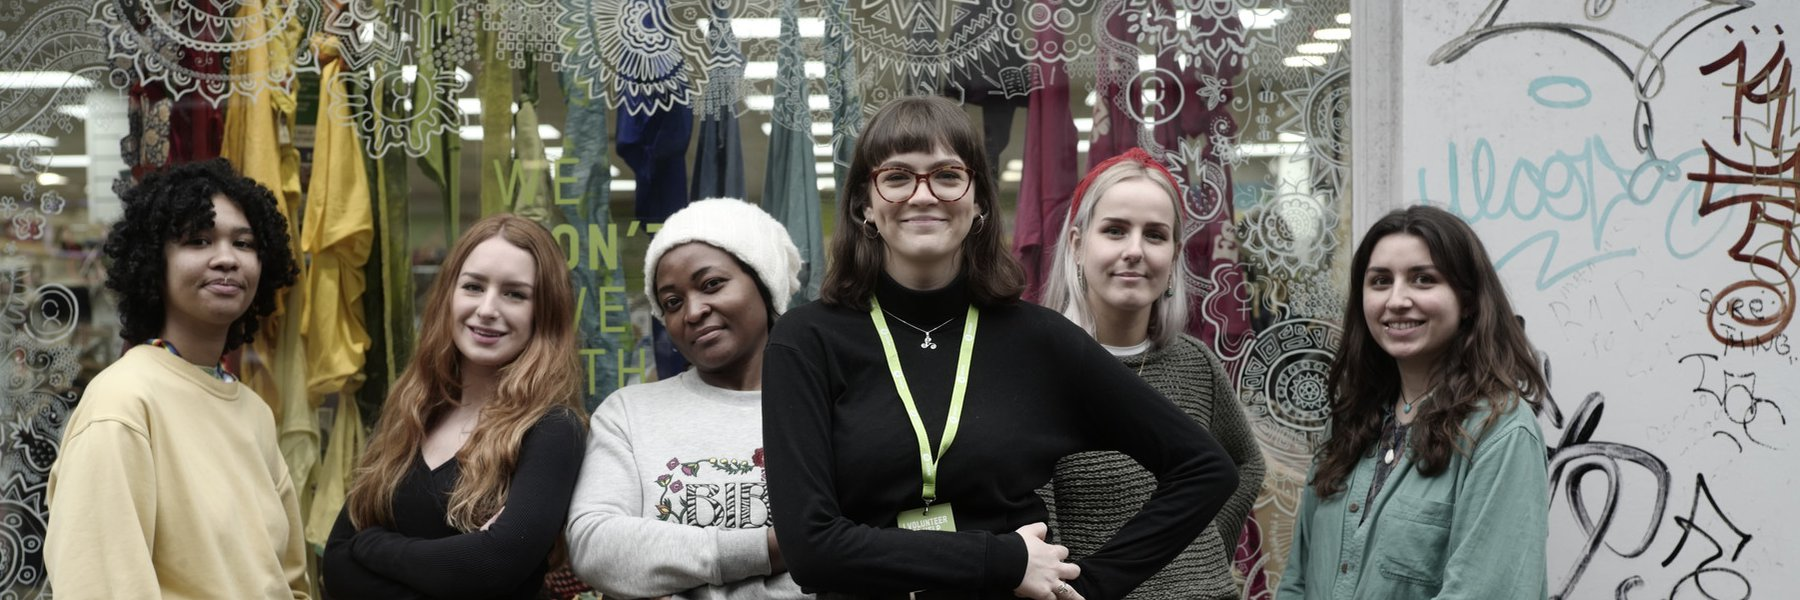 Volunteers at Oxfam Emporium, Manchester